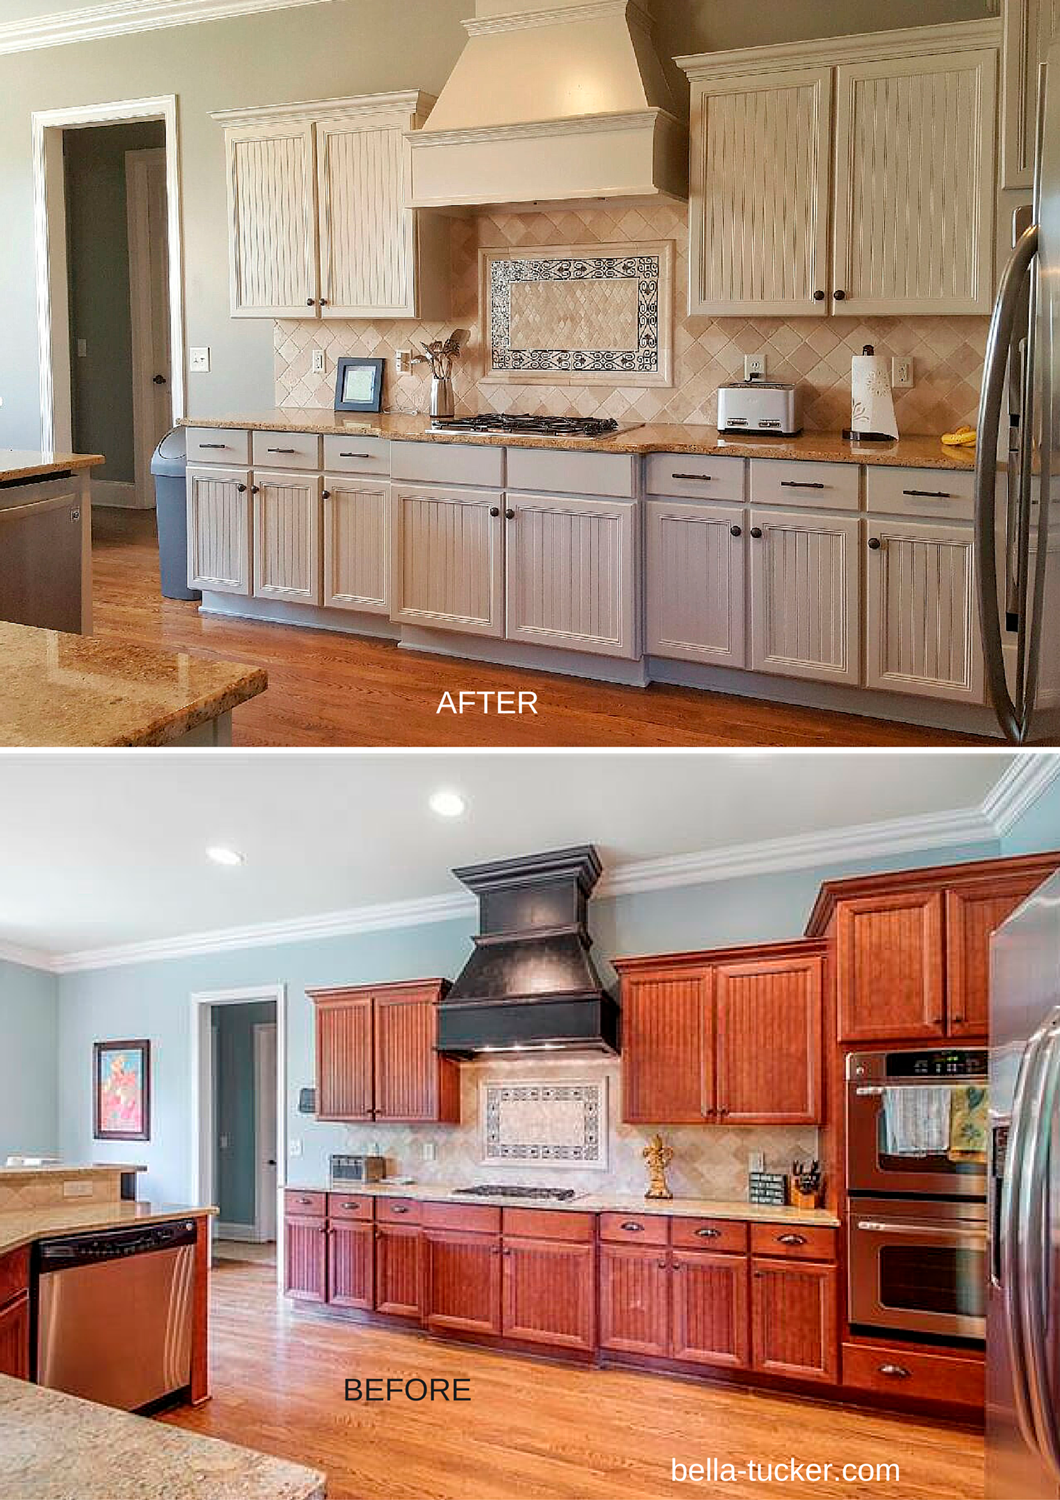 Painted Cabinets Nashville TN Before and After Photos | Accessible ...